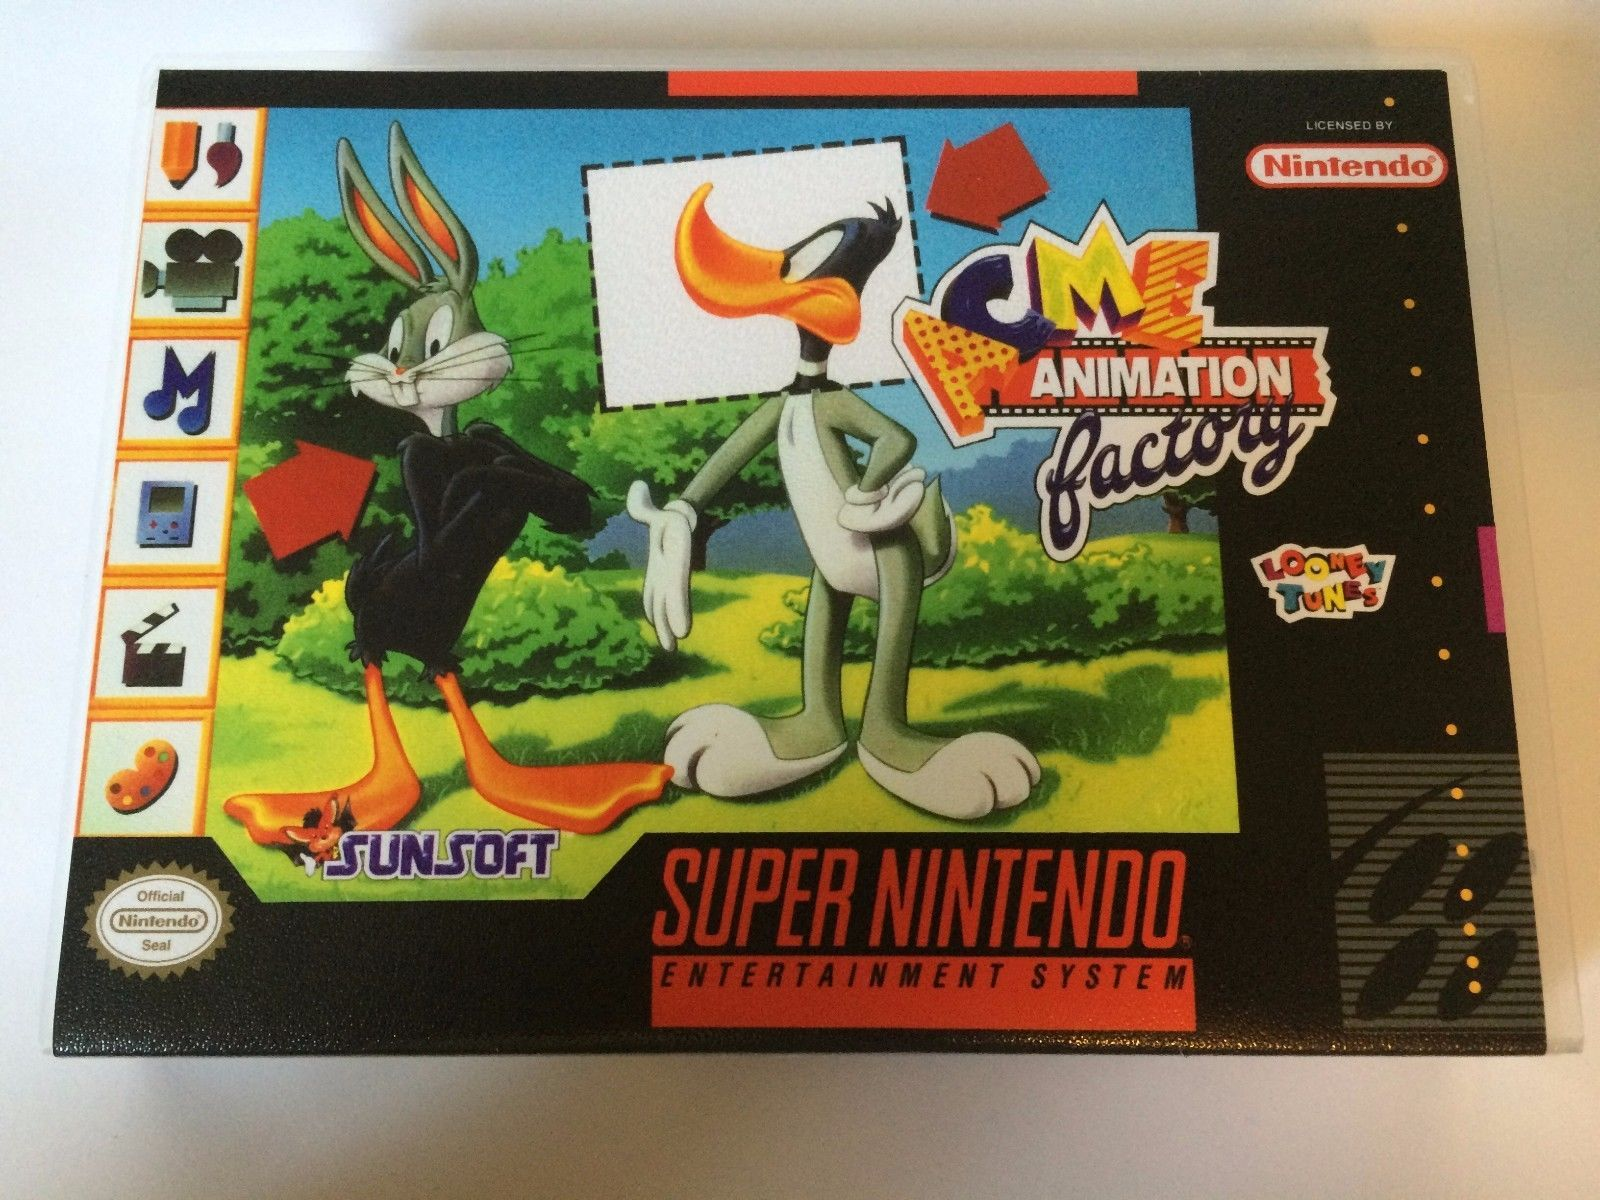 Acme Animation Factory - Super Nintendo - Replacement Case - No Game